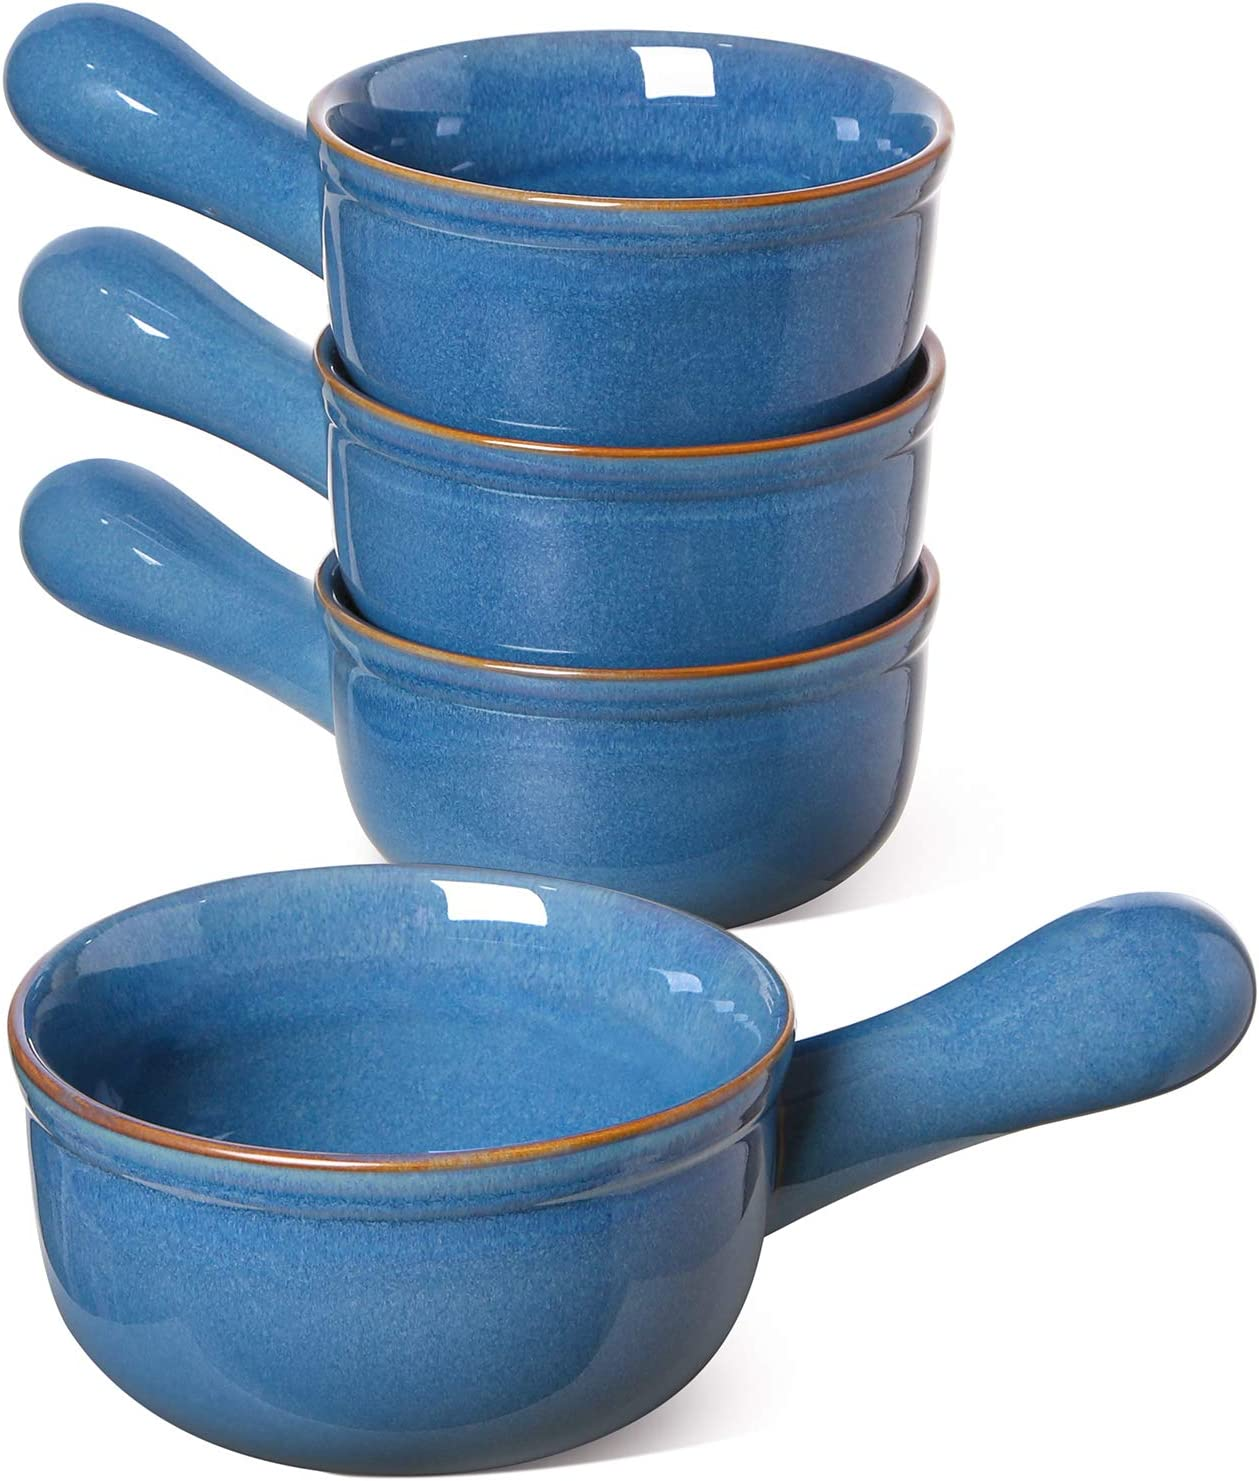 LE TAUCI 15 Oz Soup Bowls With Handles, French Onion Bowl for Soup, Chili, Beef Stew, Set of 4 - CEYLON BLUE